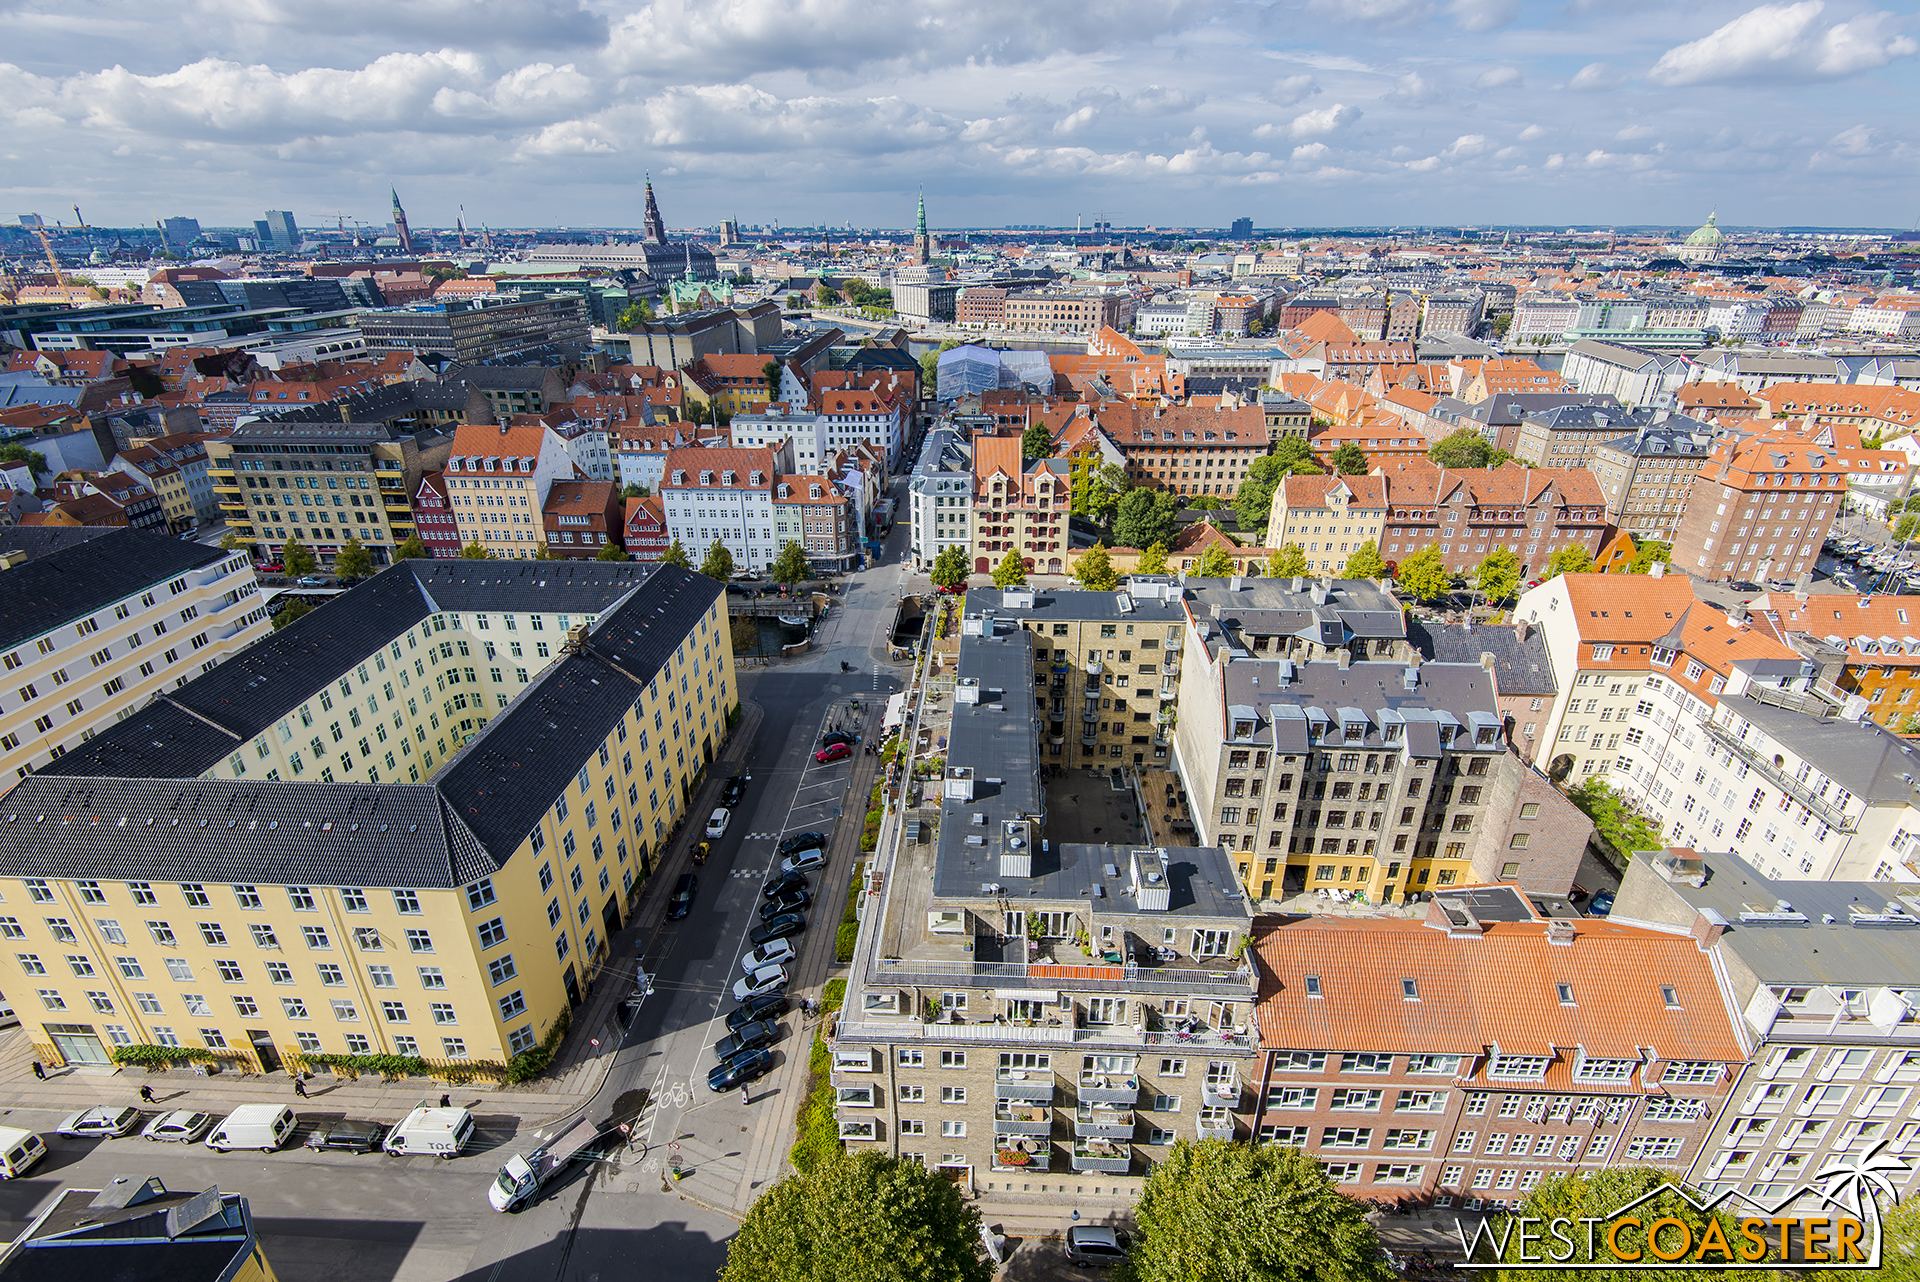 A part of the Copenhagen skyline, as viewed from the Church of Our Savior.